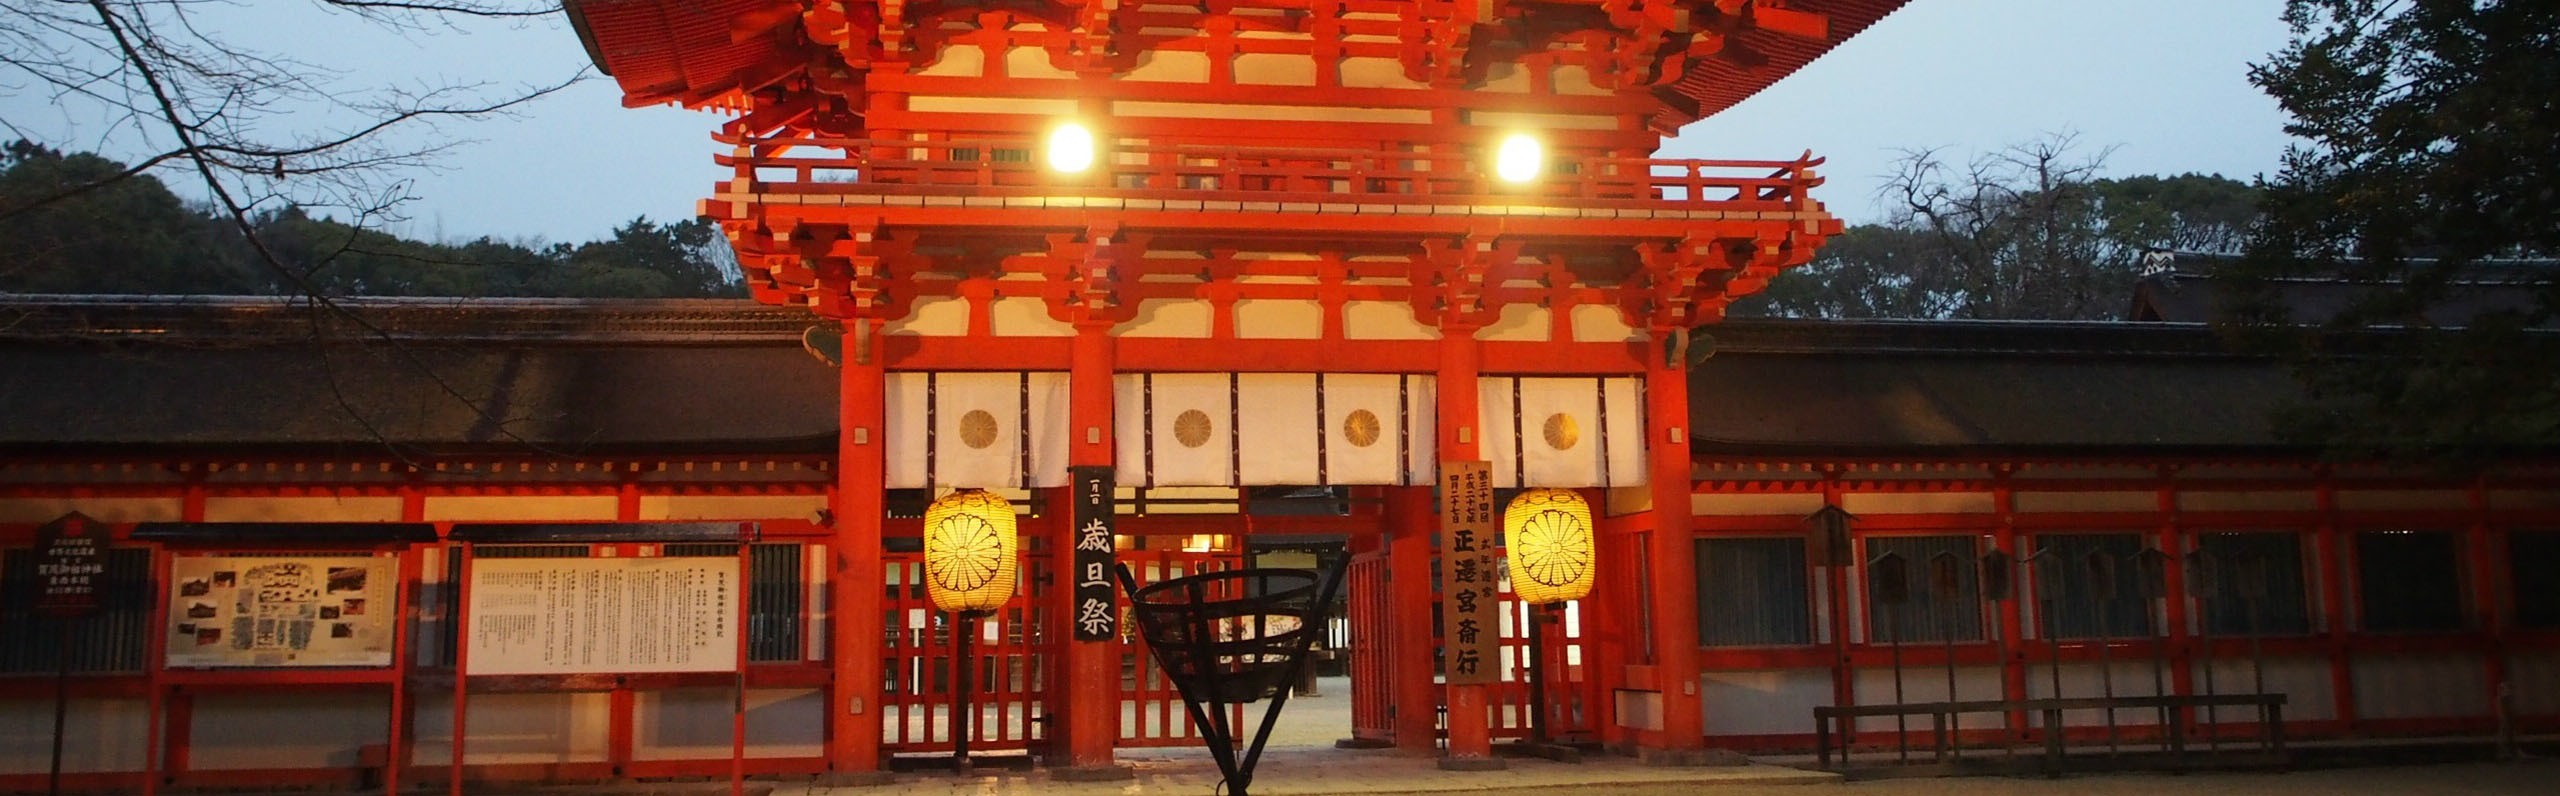 Guide to Shinto Shrines in Japan - Features and Styles